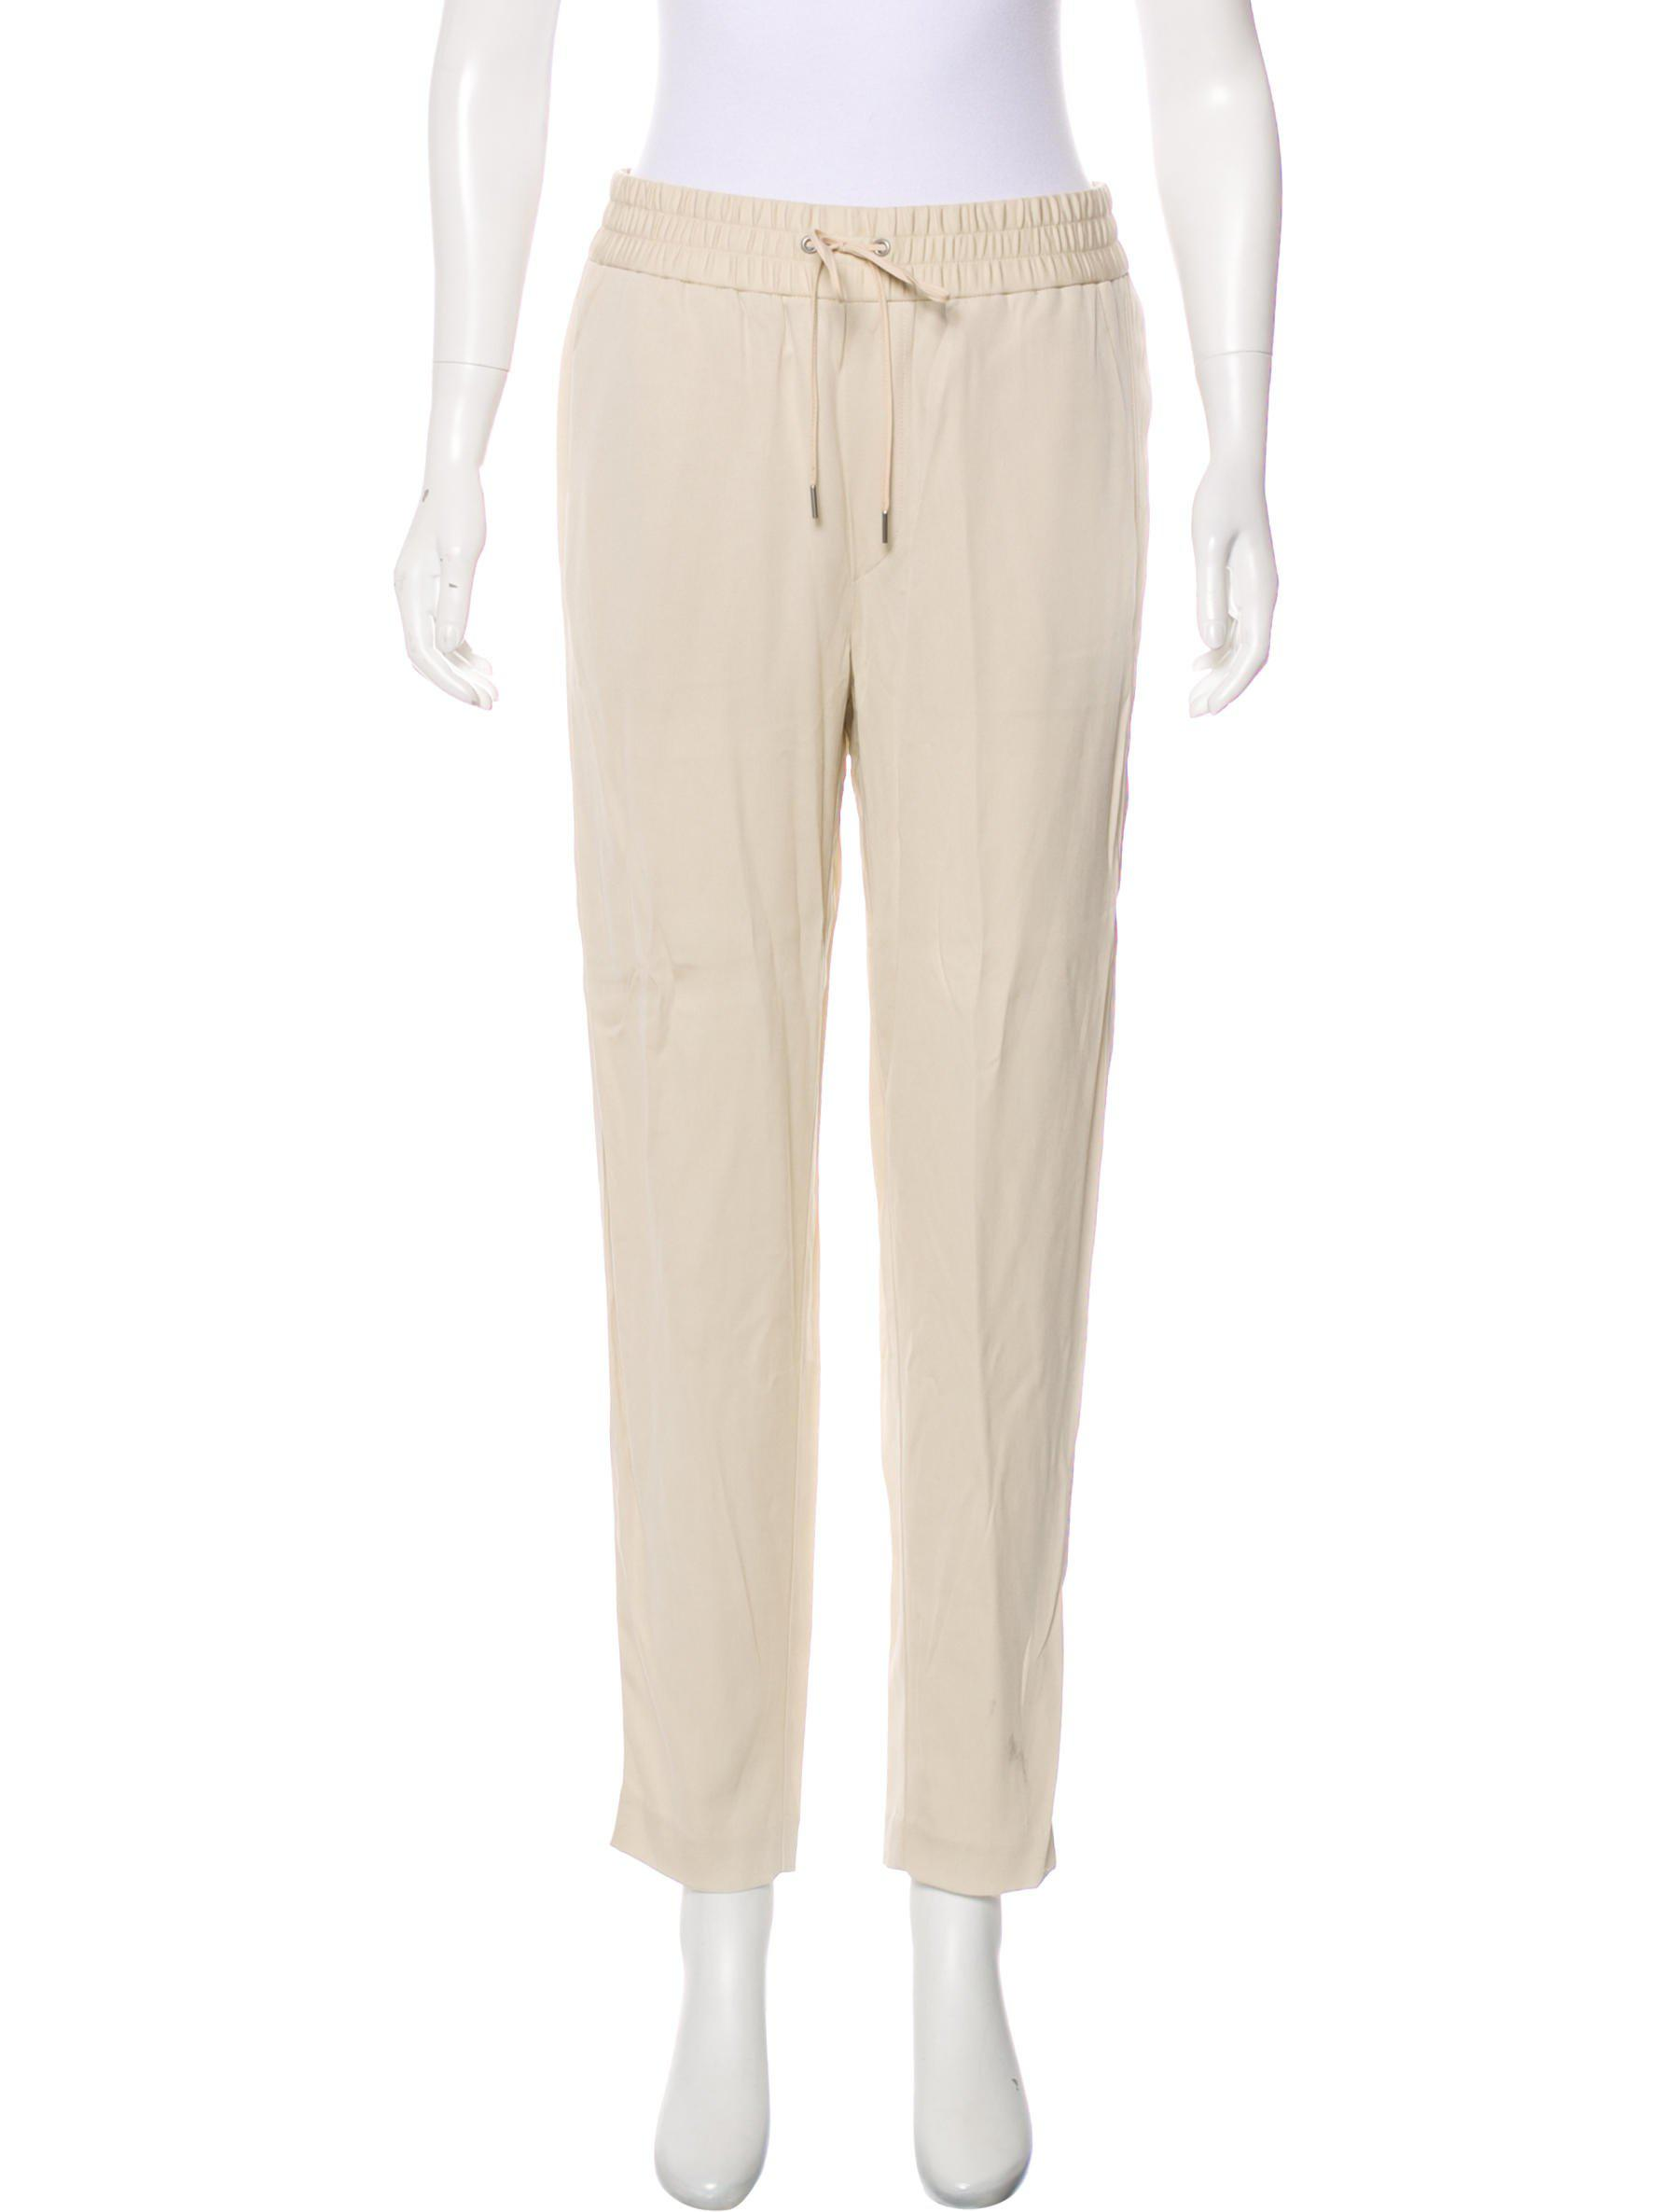 6cbc9085f1 Lyst - Helmut Lang Revolve High-rise Pants in White